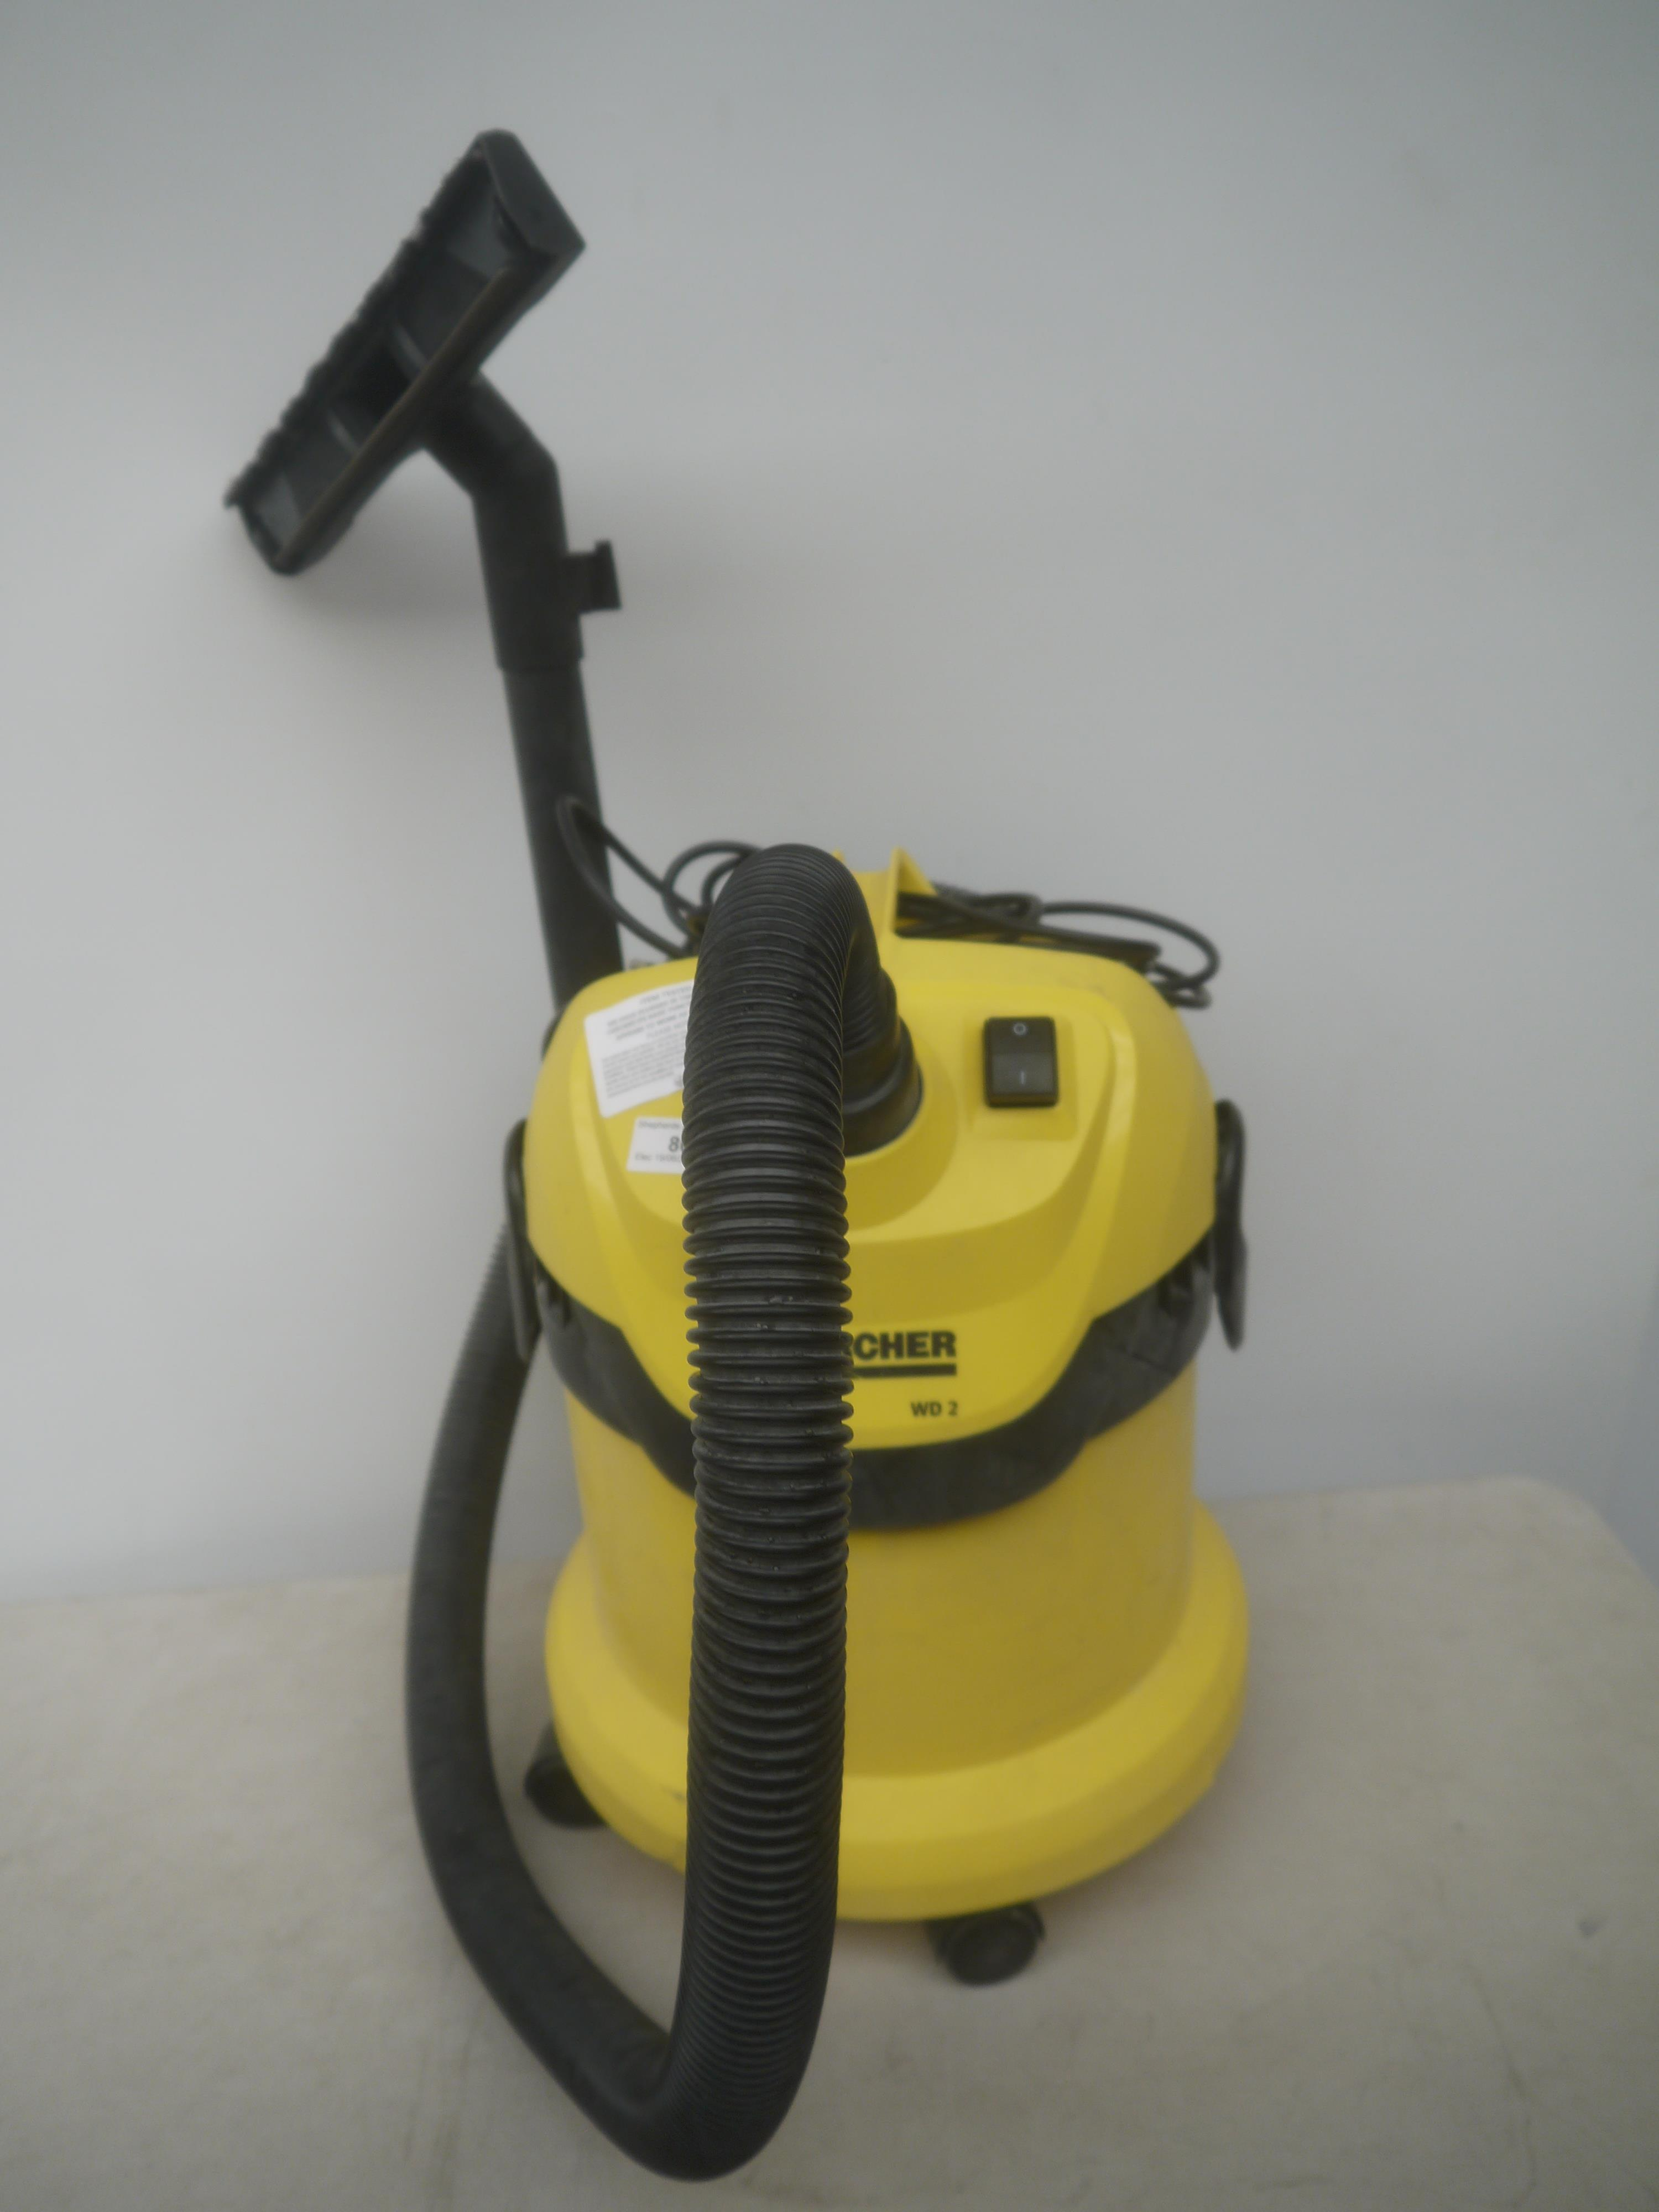 karcher wd2 work shop vacuum cleaner yellow colour. Black Bedroom Furniture Sets. Home Design Ideas